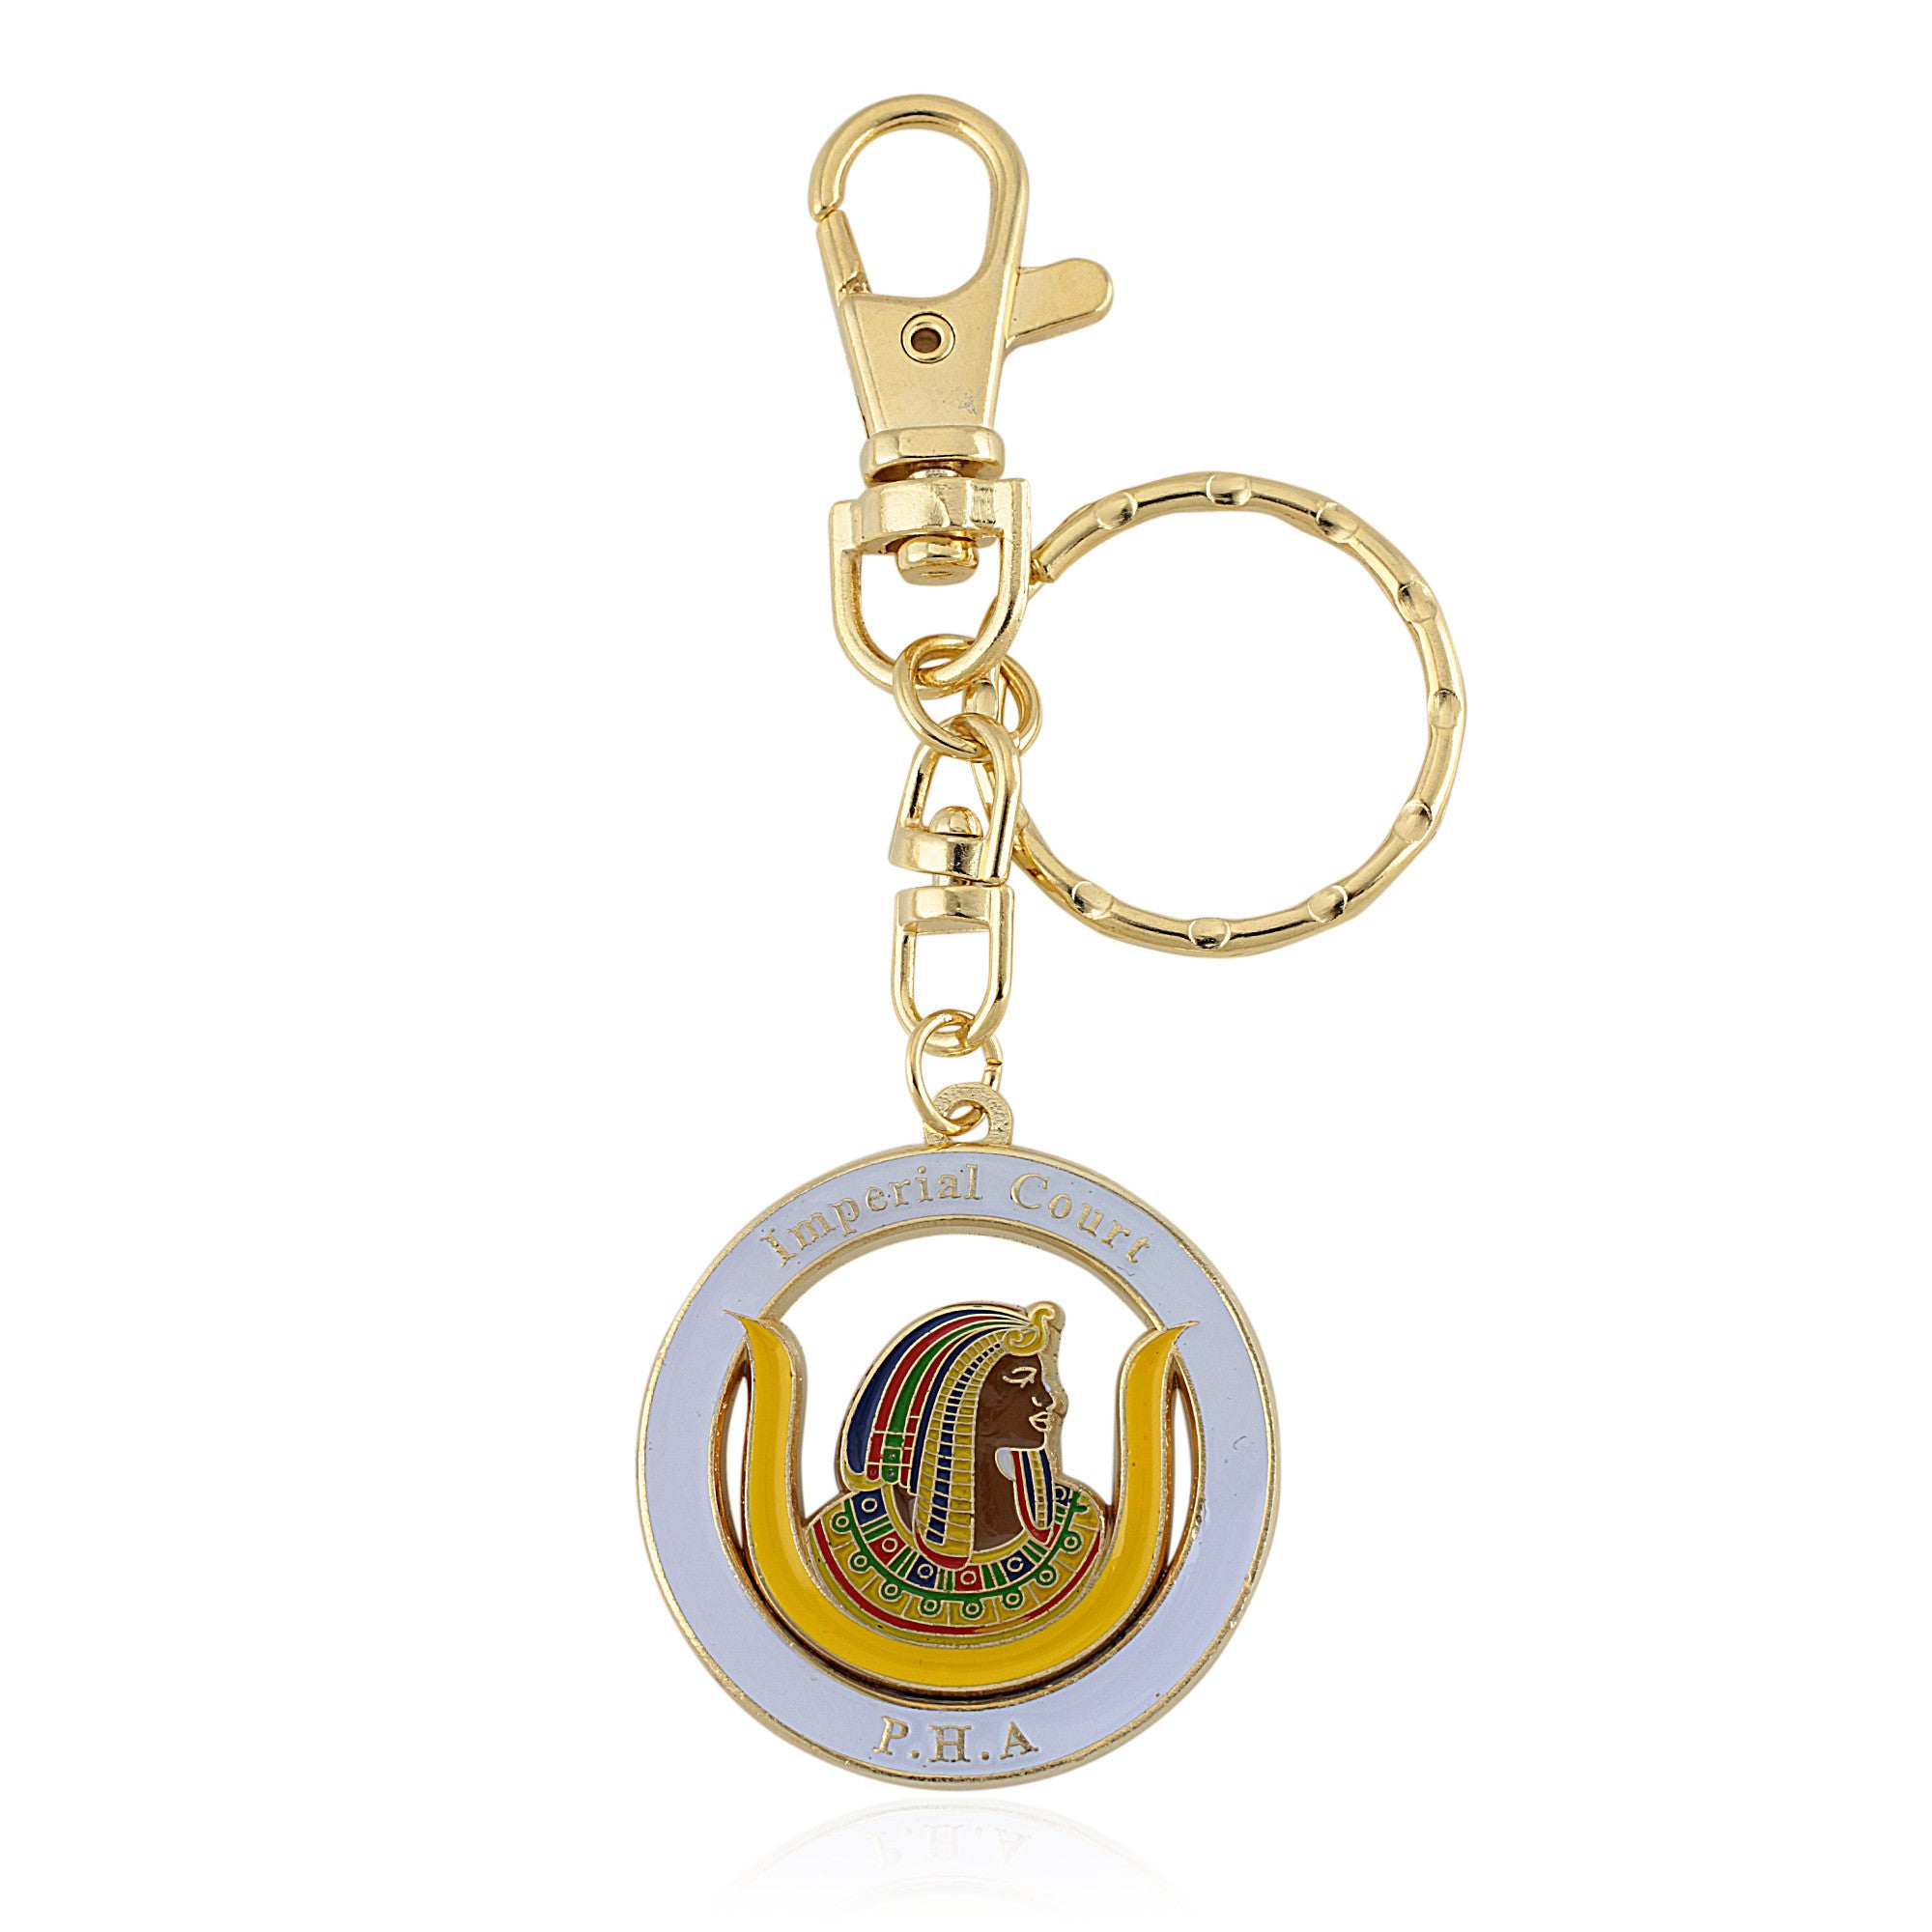 Daughters of Isis/Imperial Court (PHA) Key Chain with Purse Clip